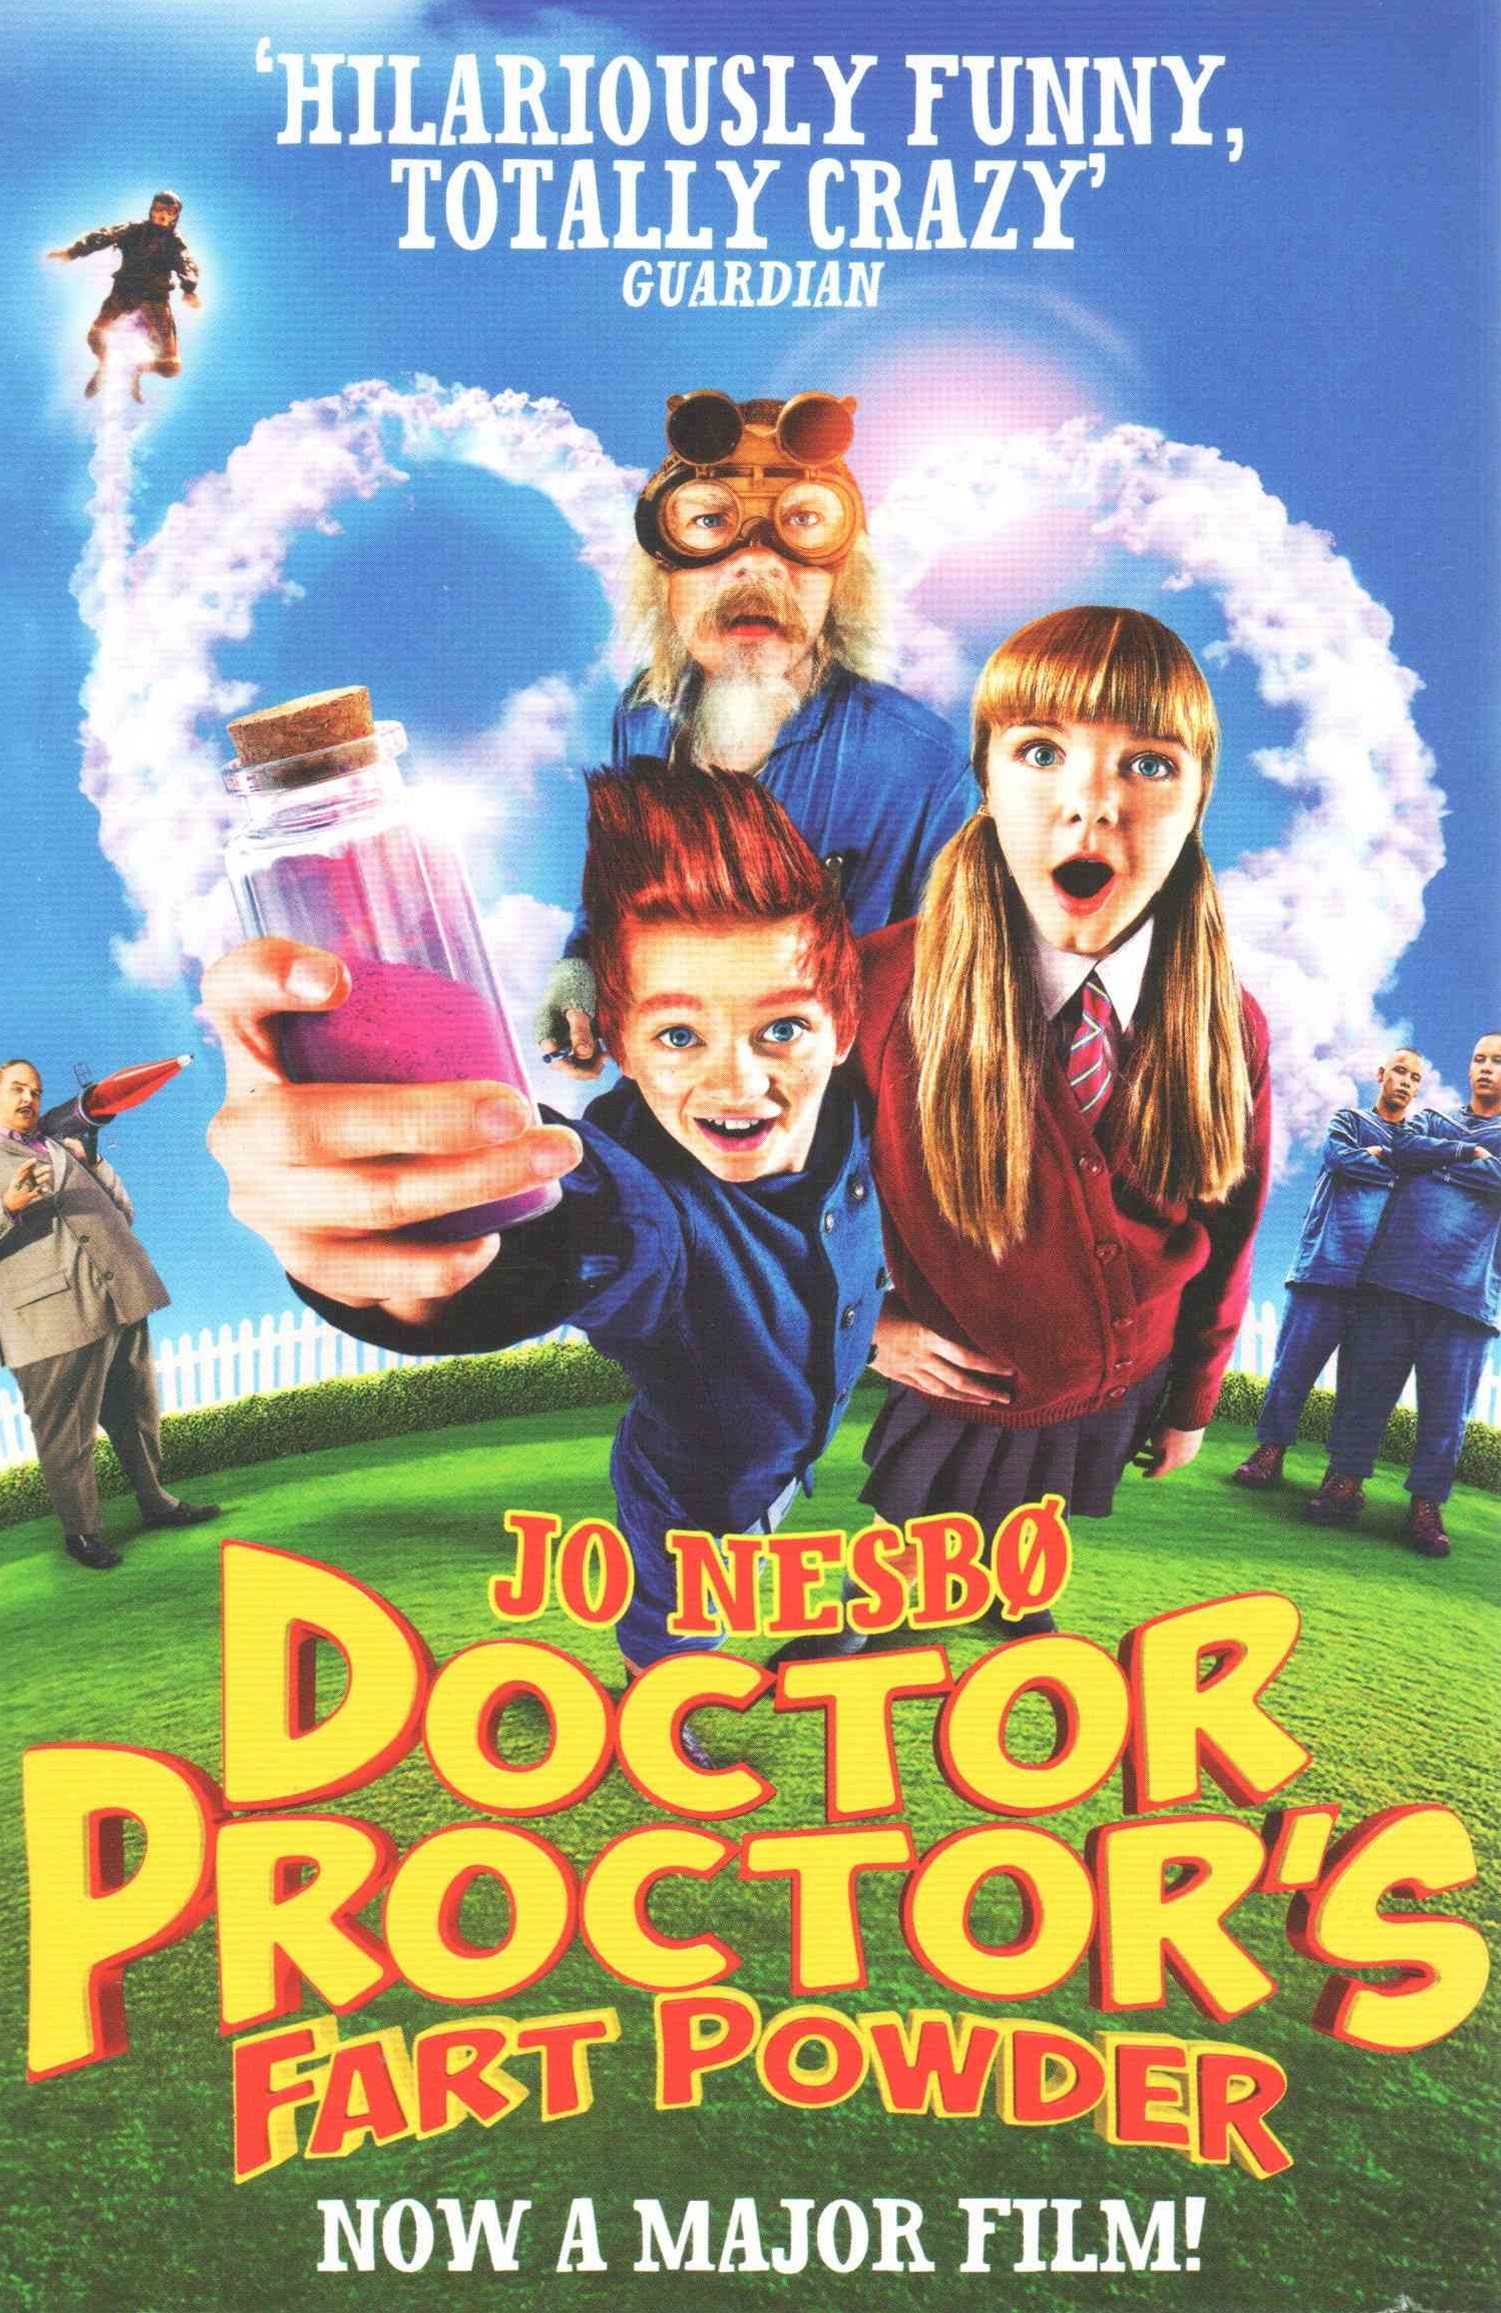 Doctor Proctor's Fart Powder; movie tie-in